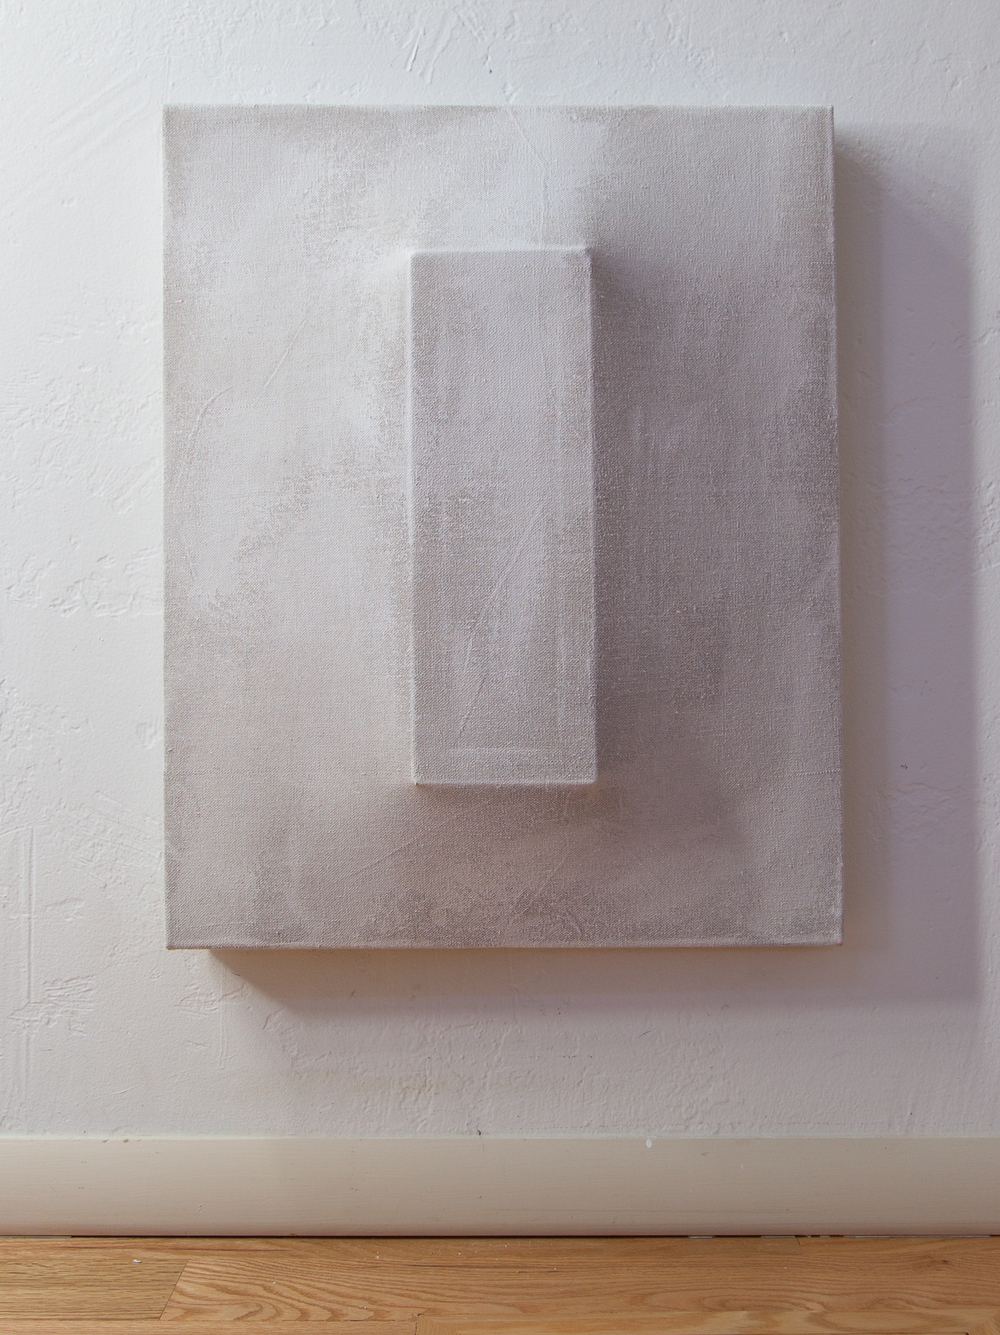 There's a Block in the Void (1243) , 2015, gesso on shaped canvas, 30 x 24 inches, Installation *